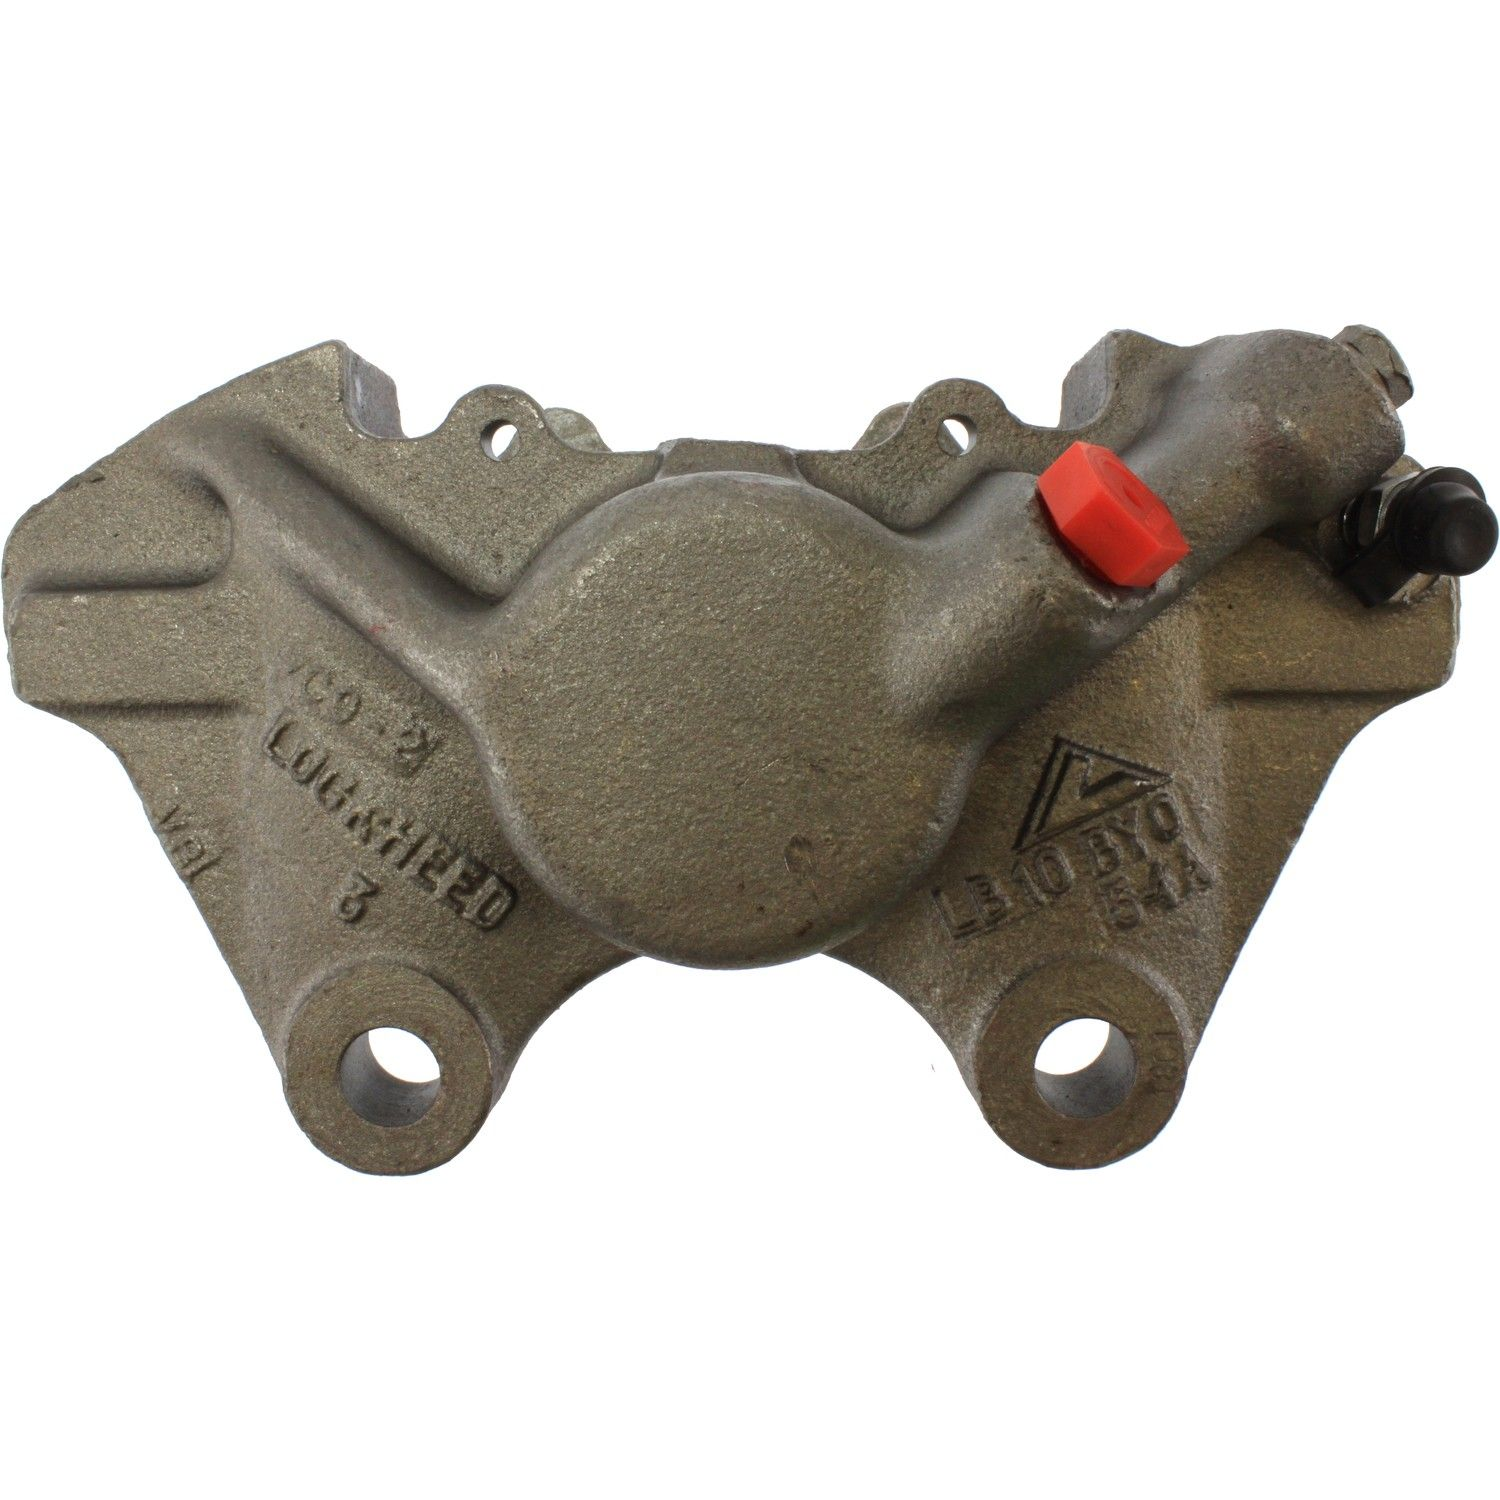 Land Rover Defender 90 Disc Brake Caliper Replacement Allmakes 4x4 1994 Rear Left Centric 14122504